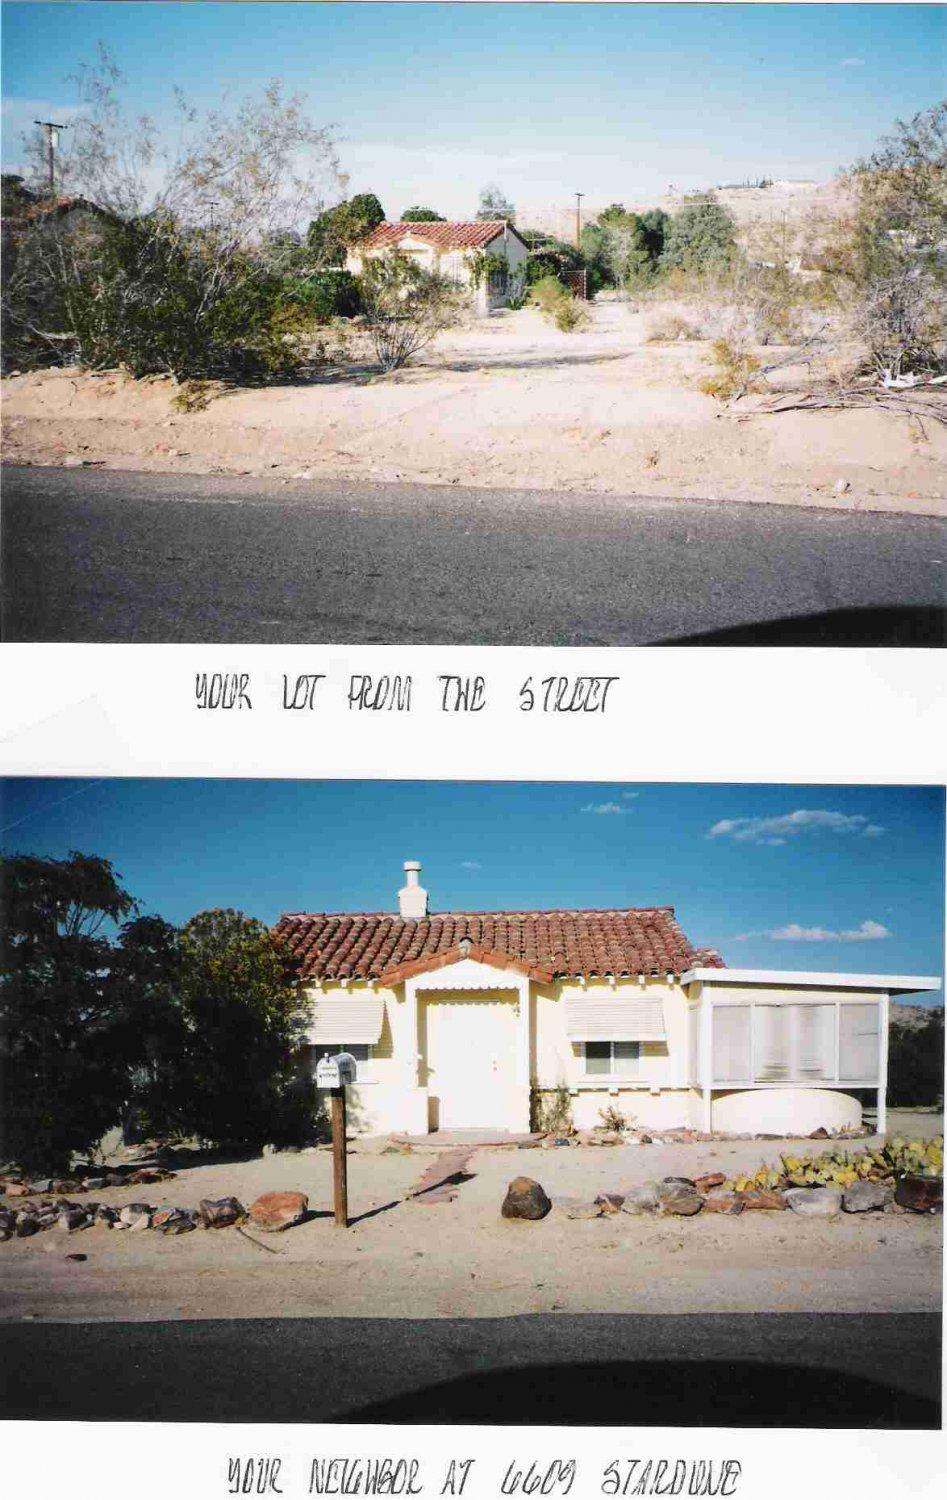 29 Palms - Stardune Ave